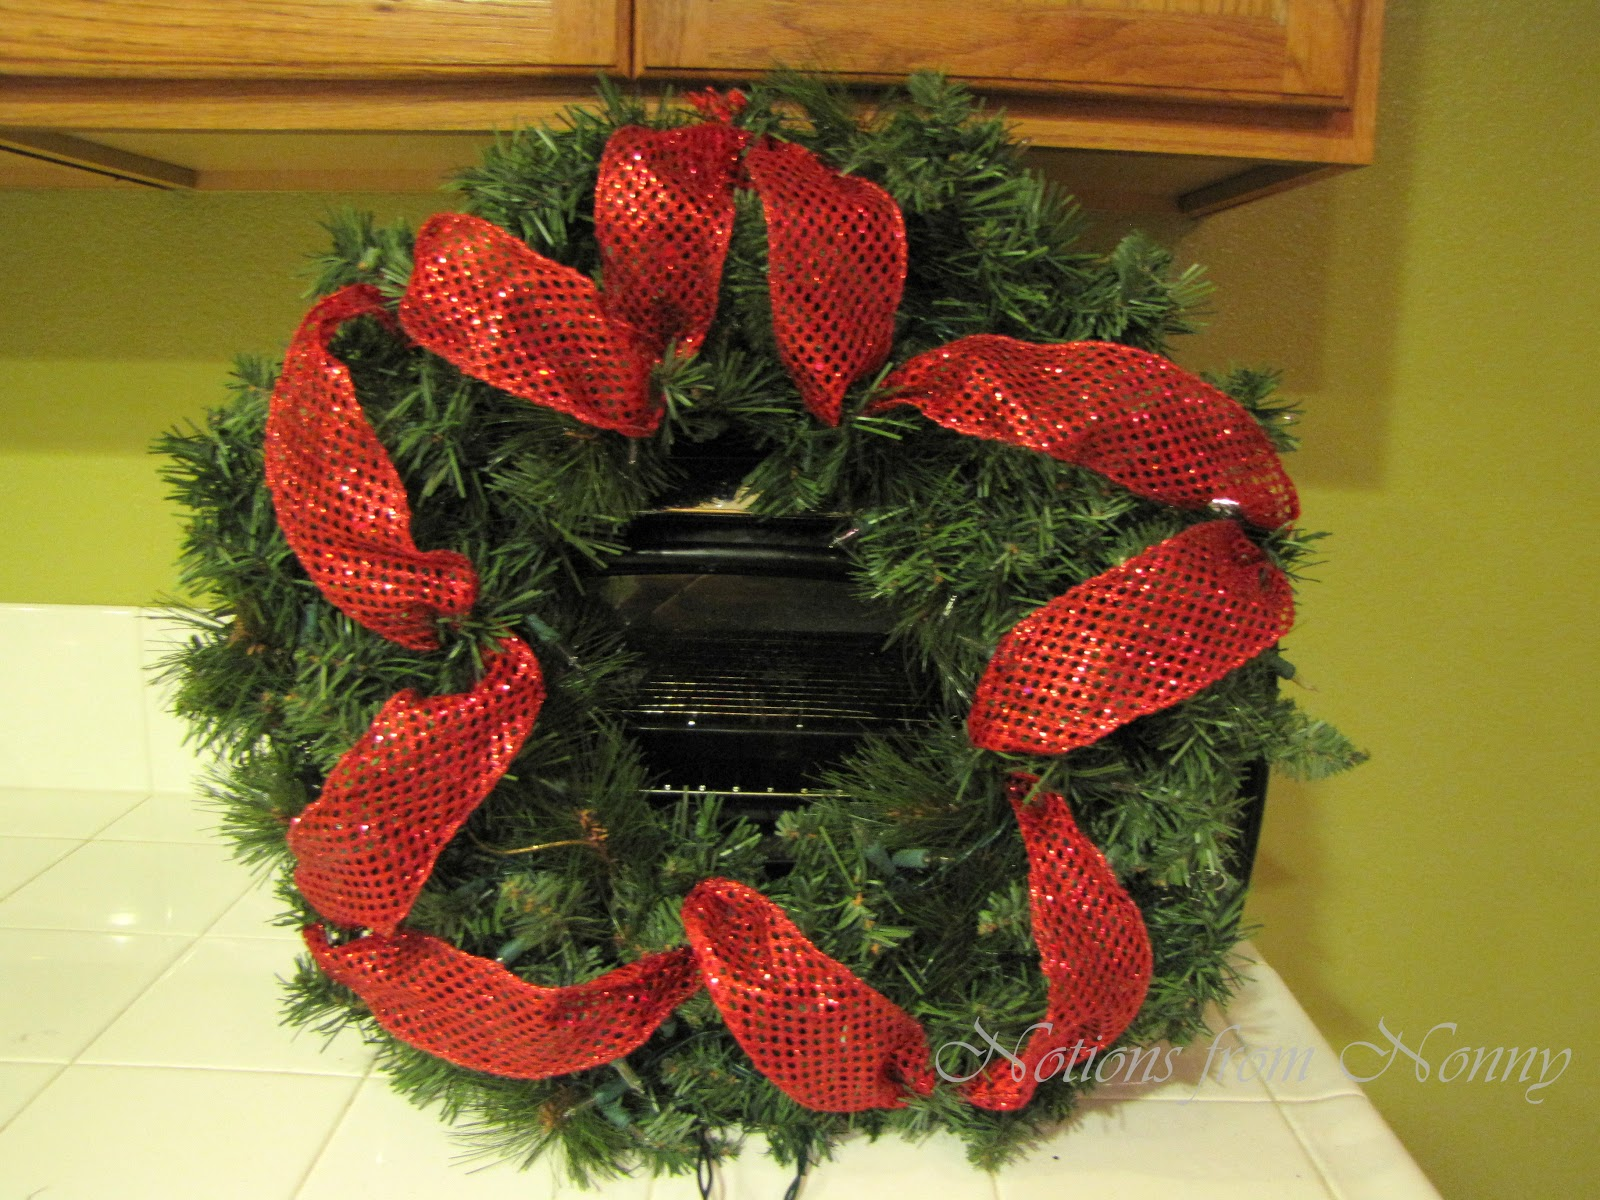 Notions from Nonny: Easy Deco Mesh Christmas Wreath